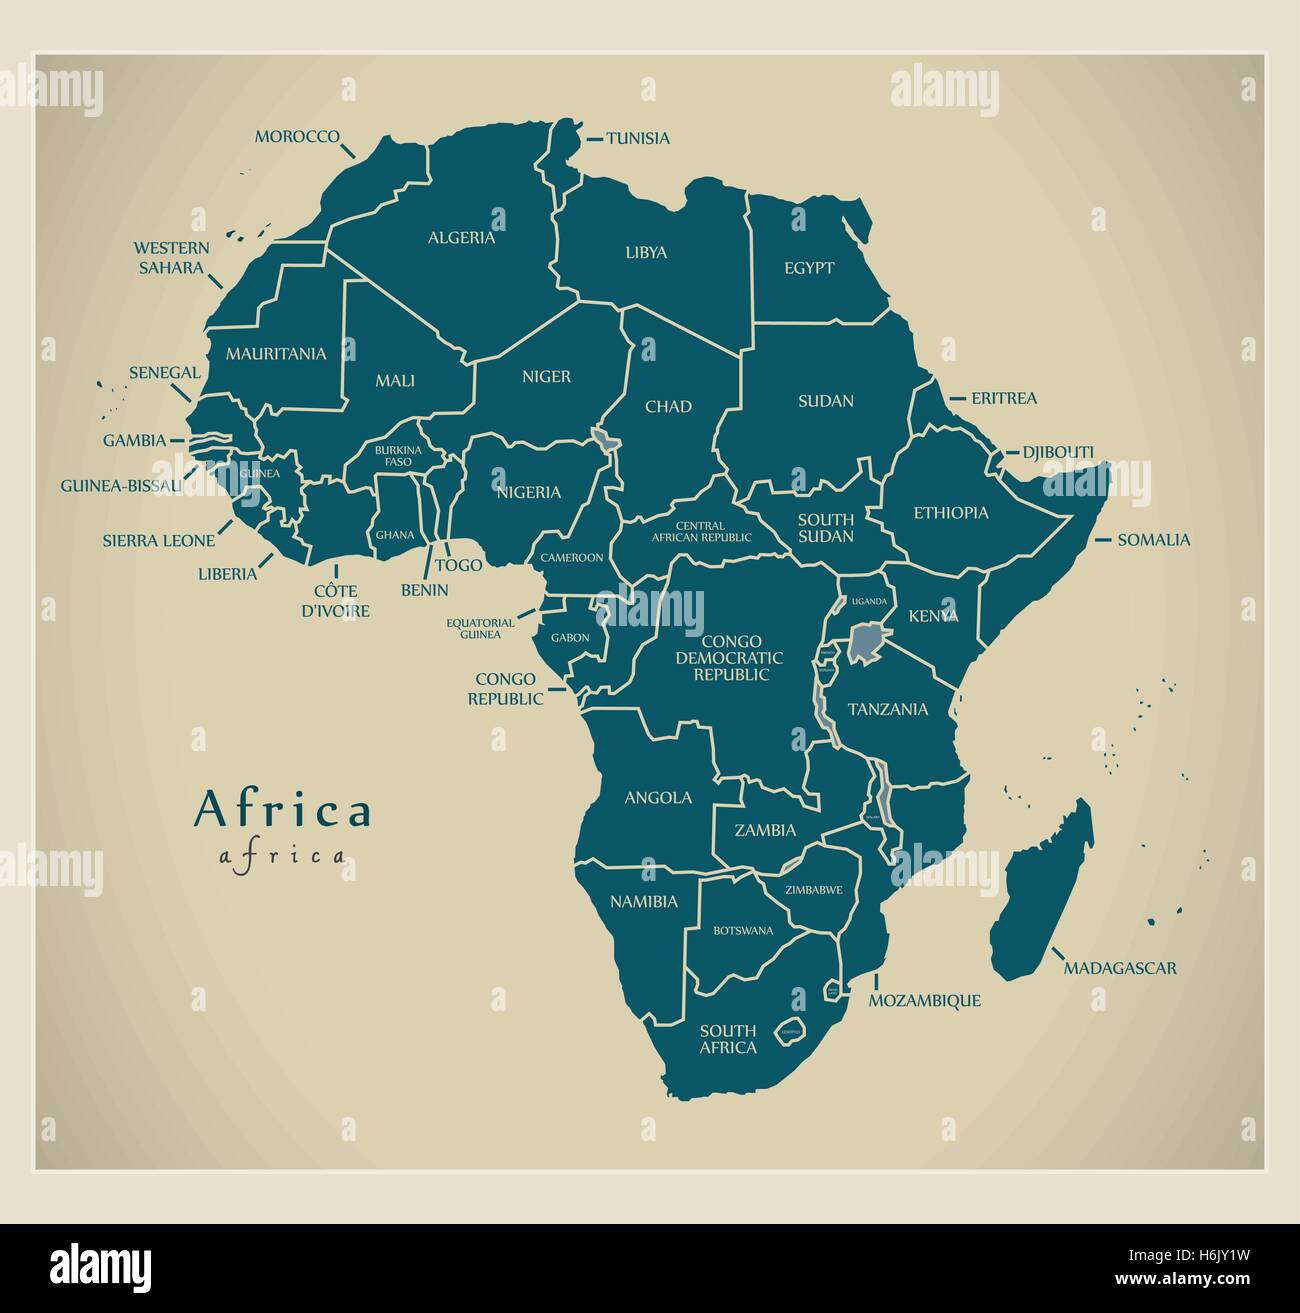 Modern Map Of Africa.Modern Map Africa Continent With Country Labels Stock